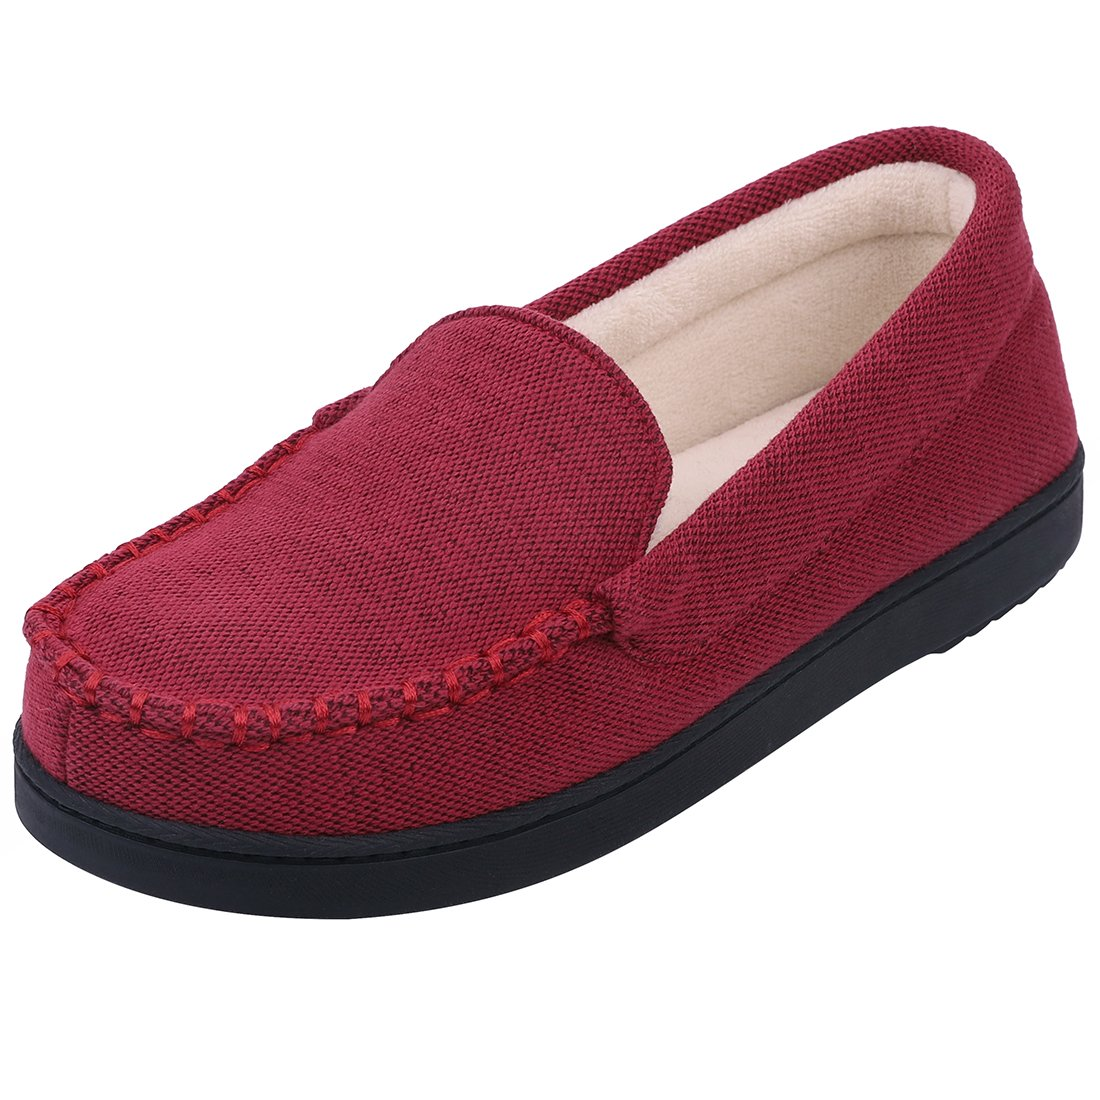 3197c016f Ladies' Knitted Moccasin Slippers, Indoor Outdoor Rubber Sole Loafers,  Anti-Slip House